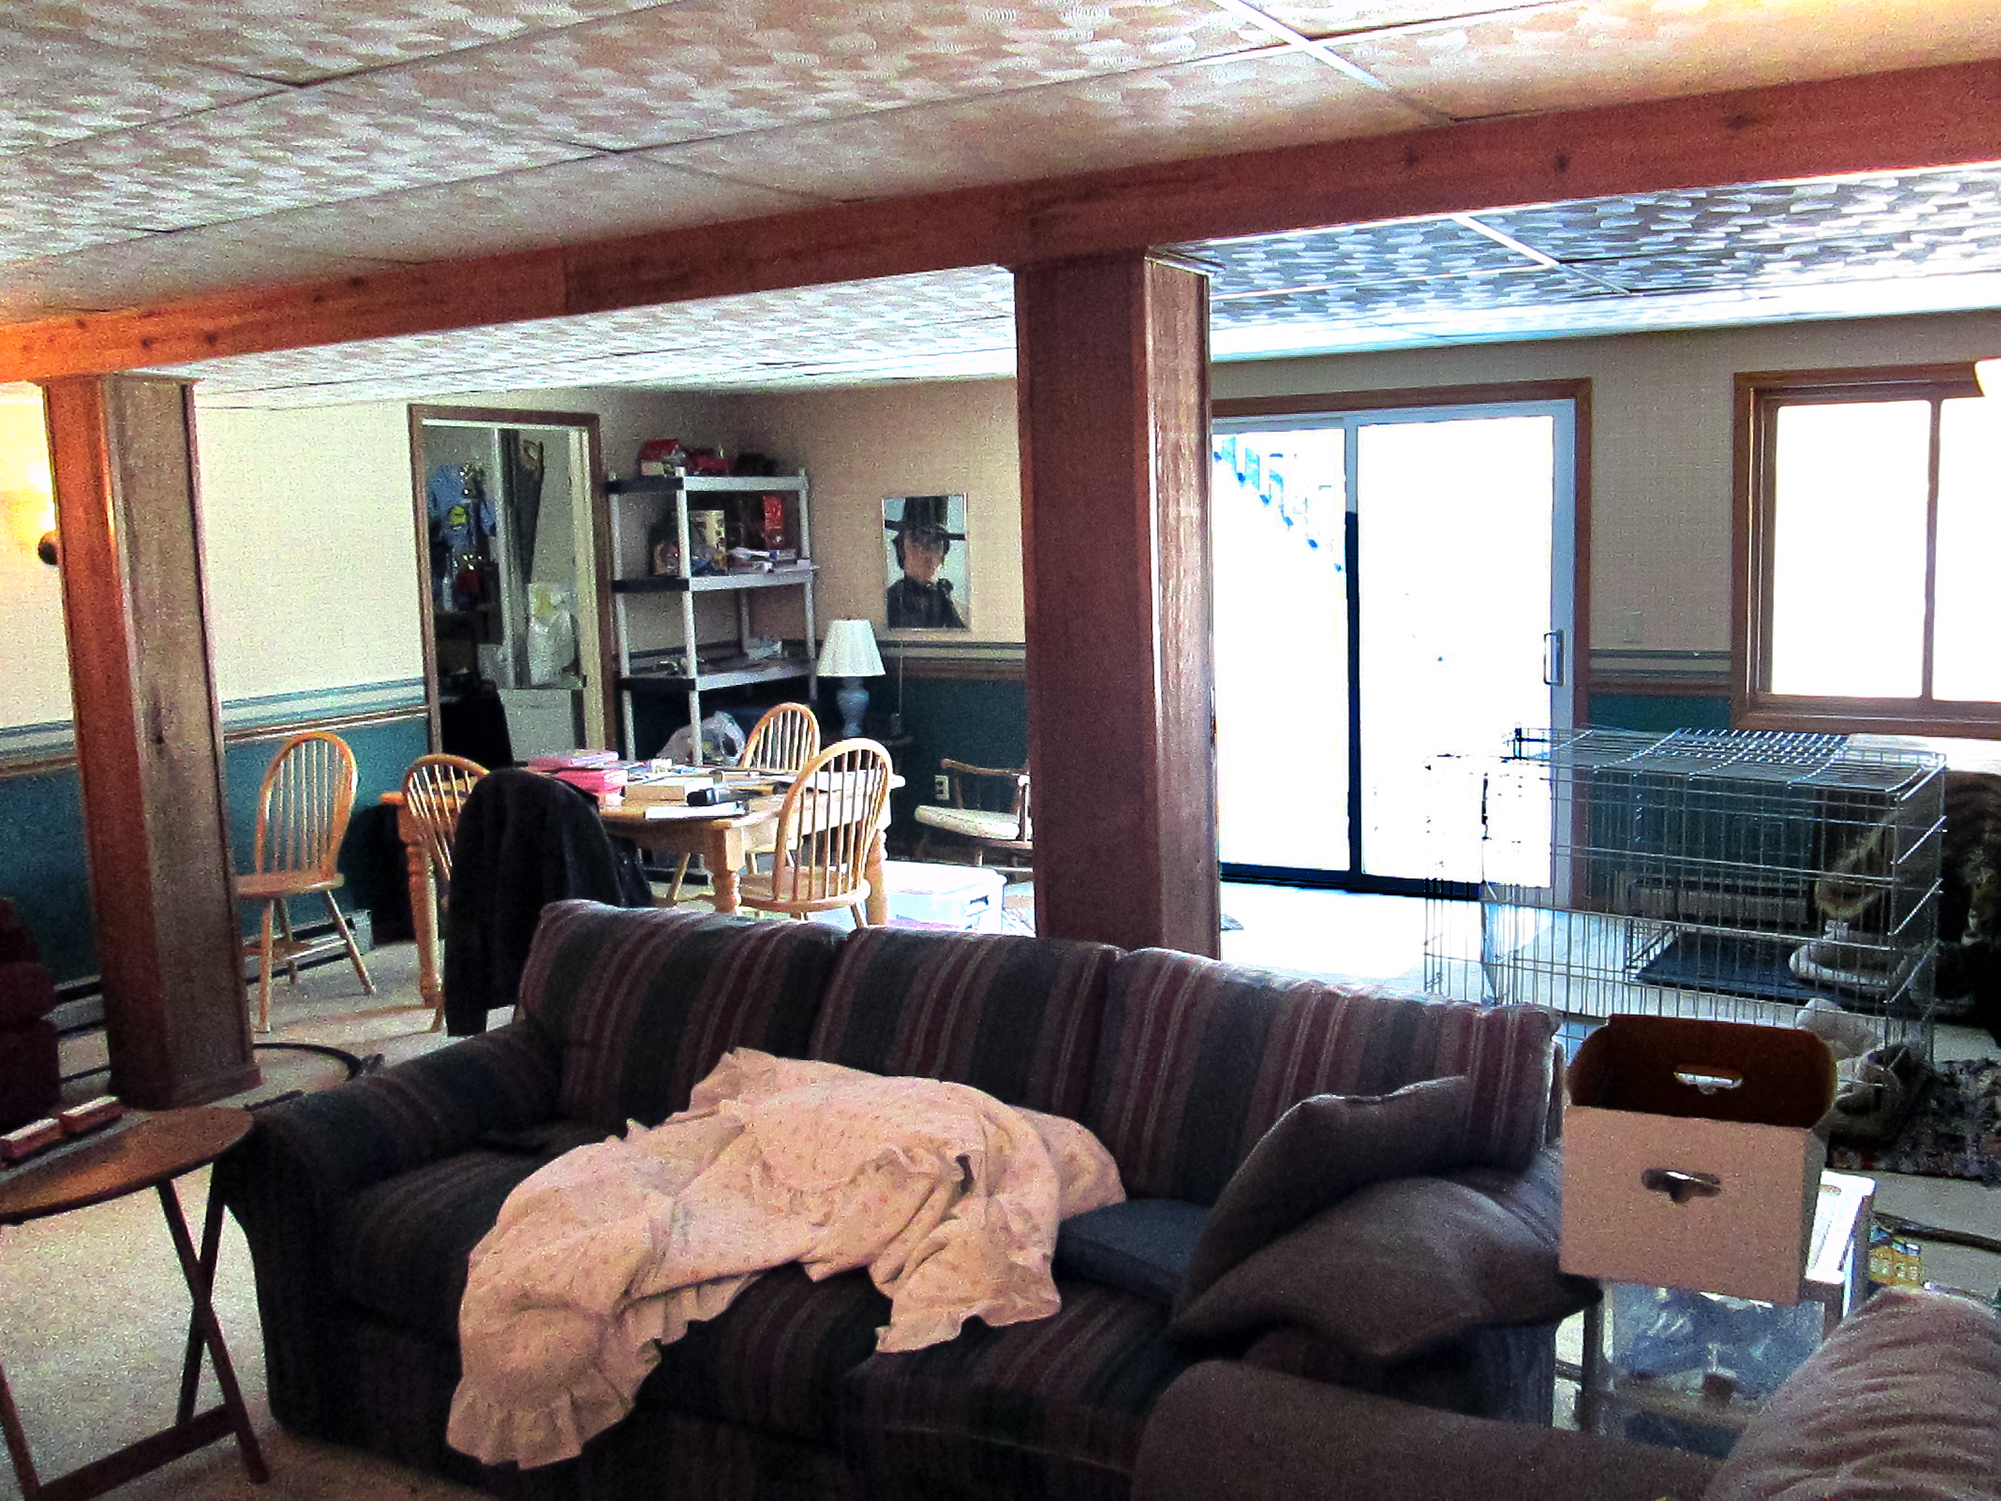 Before basement renovation residential architecture Anderson Township